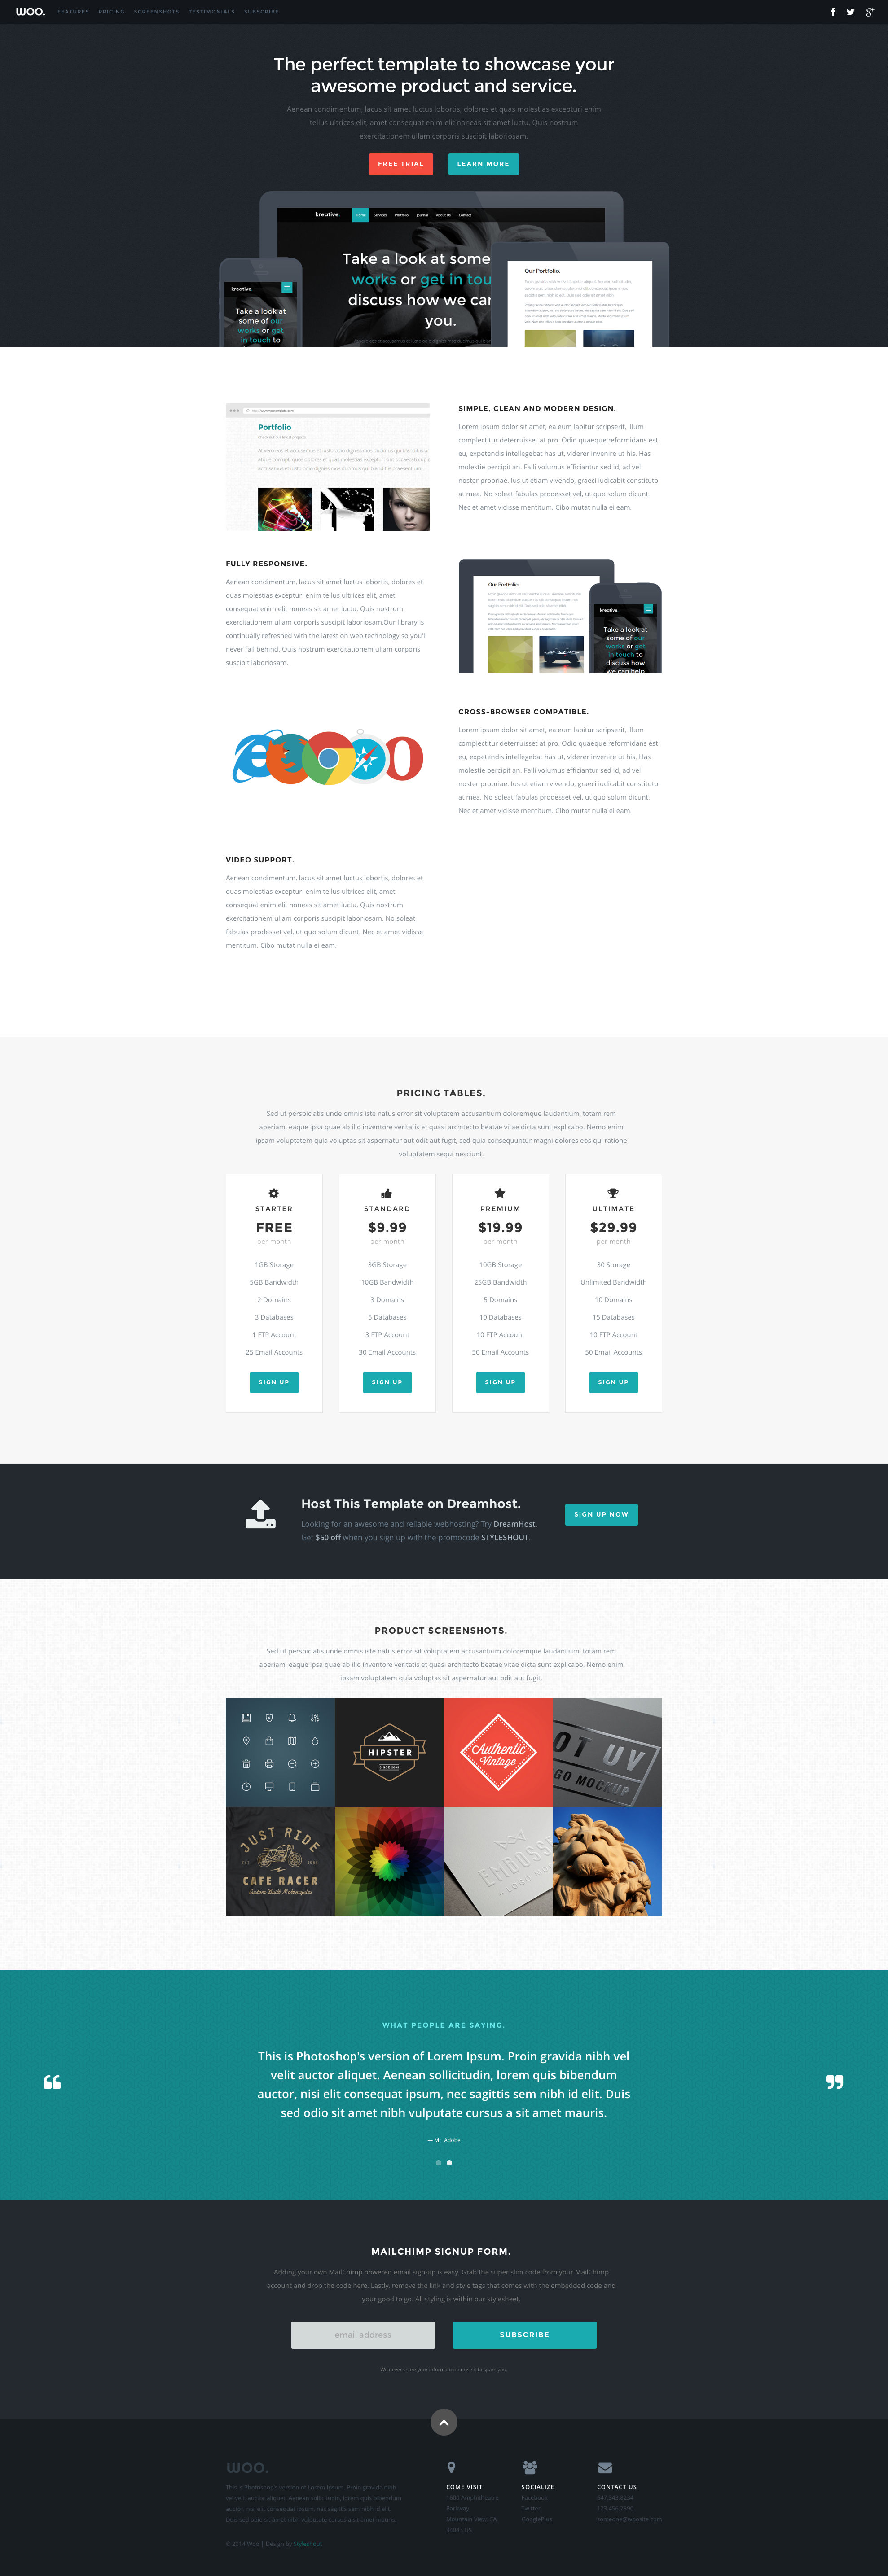 Woo free HTML template is perfect for any product related website. It is cross browser compatible and retina ready and works on all major platforms. Woo free html template has an amazing layout and a beautiful design it is the ideal template to showcase your product.